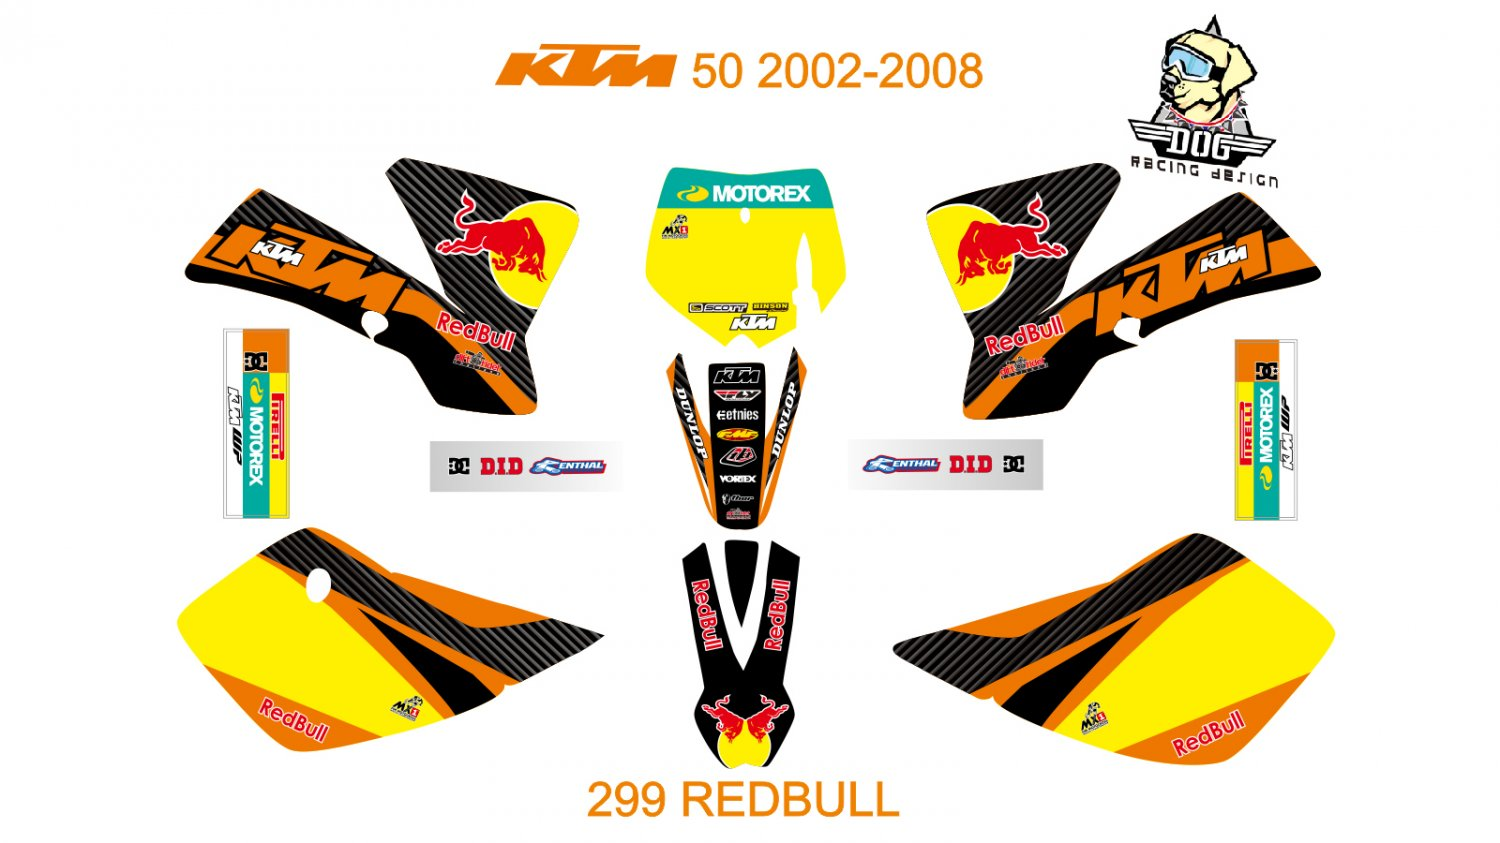 KTM 50 2002-2008 GRAPHIC DECAL KIT CODE.299